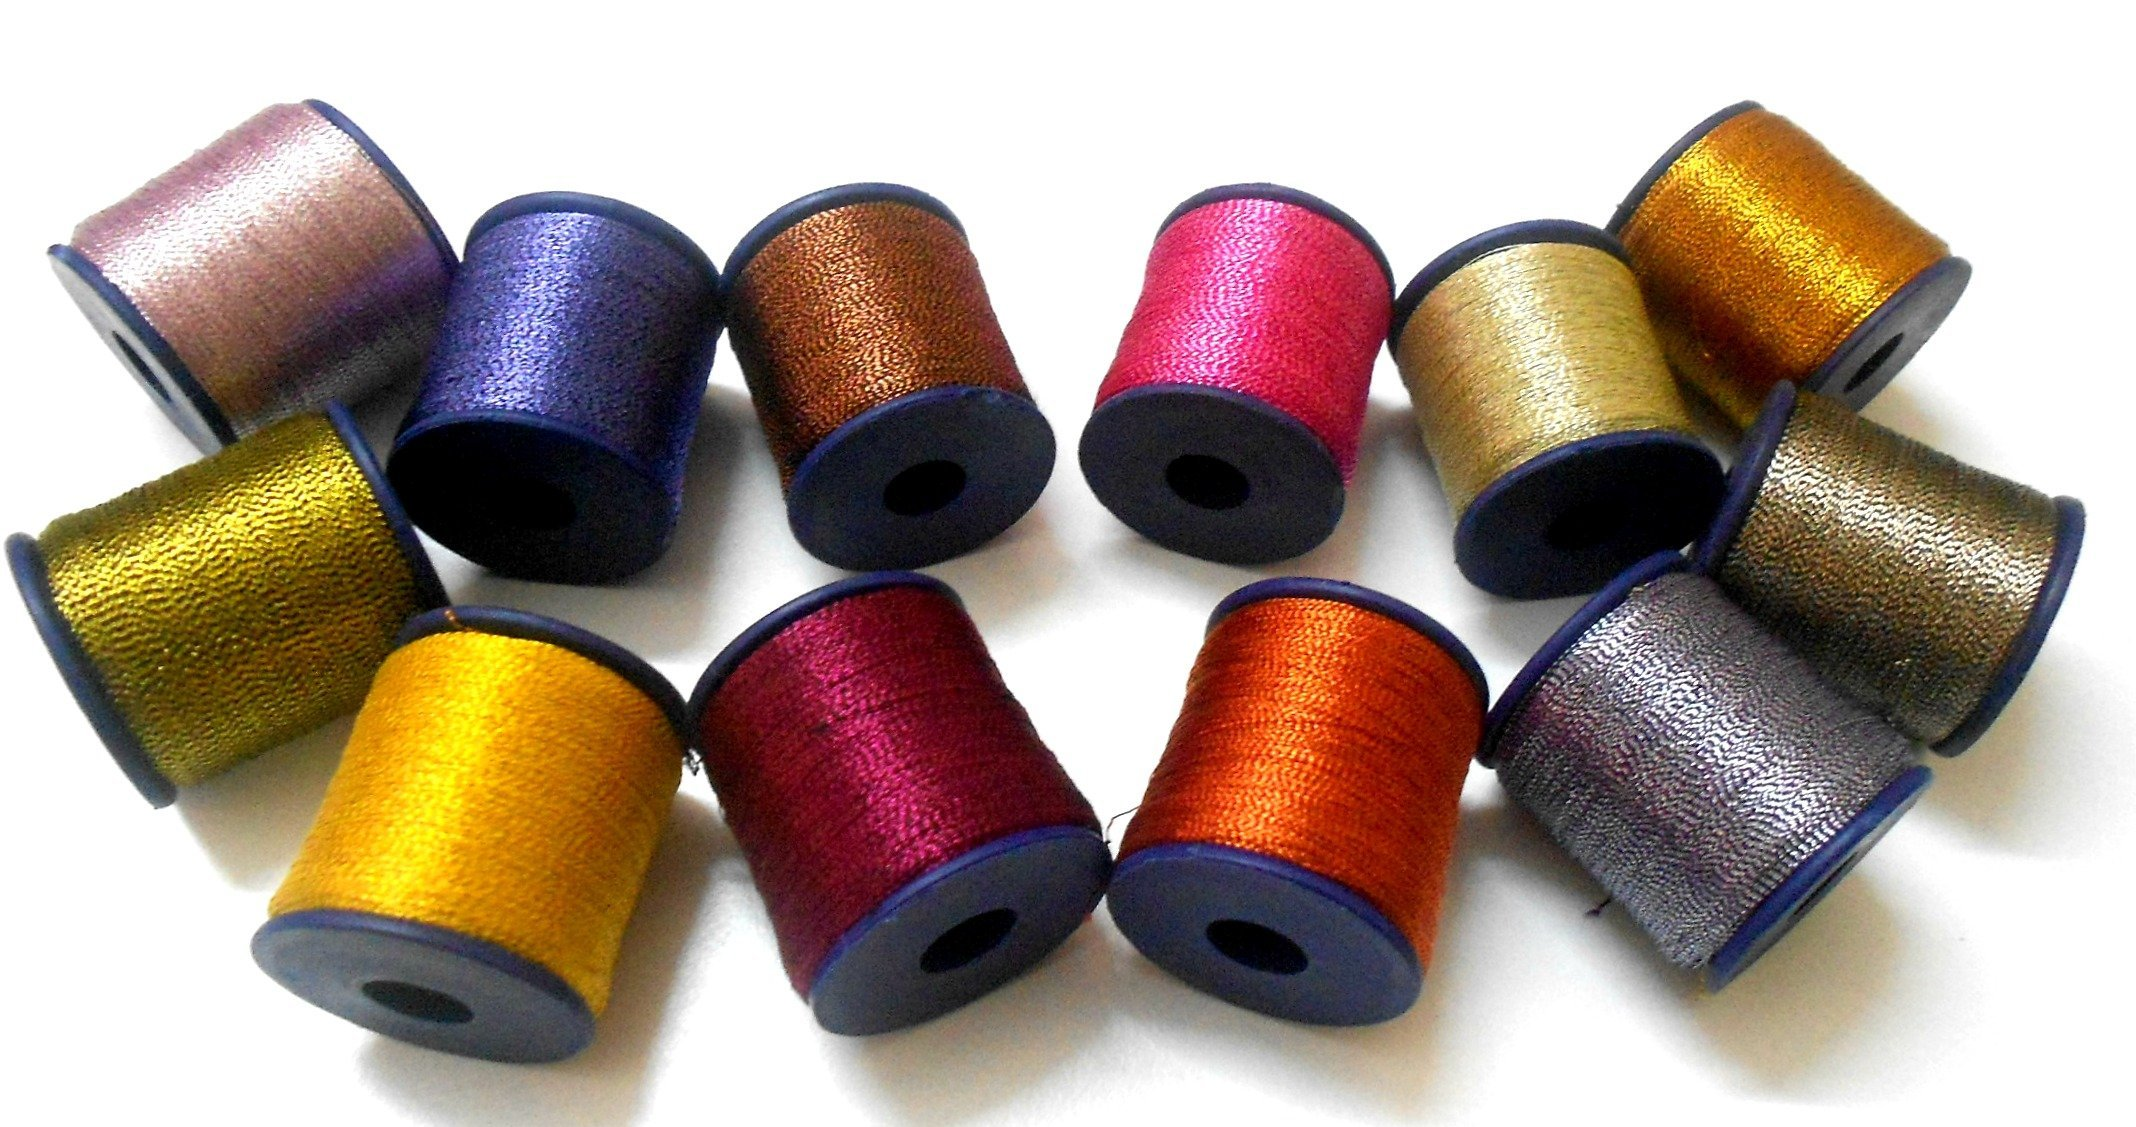 GOELX Metallic Zari Threads Colourful Shiny Threads for Crafts, Embroidery, Jewellery Making